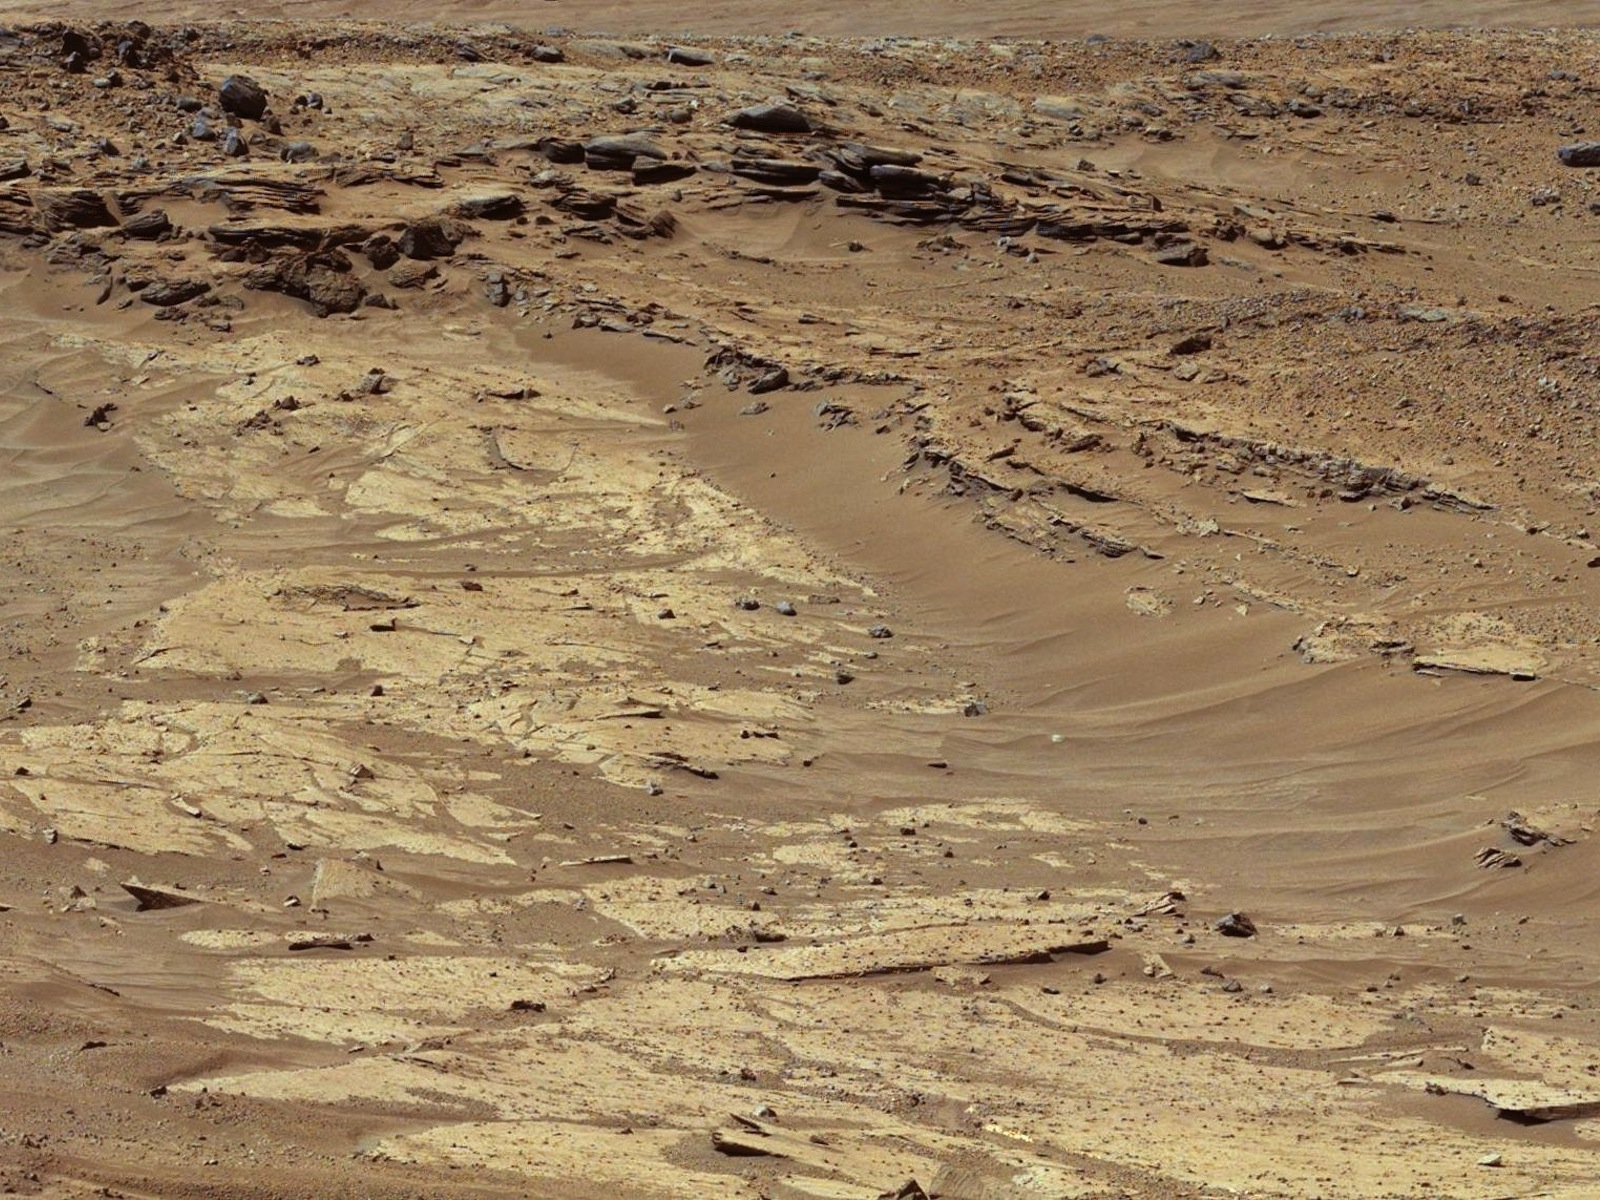 Layers of Sandstone | Space Wallpaper